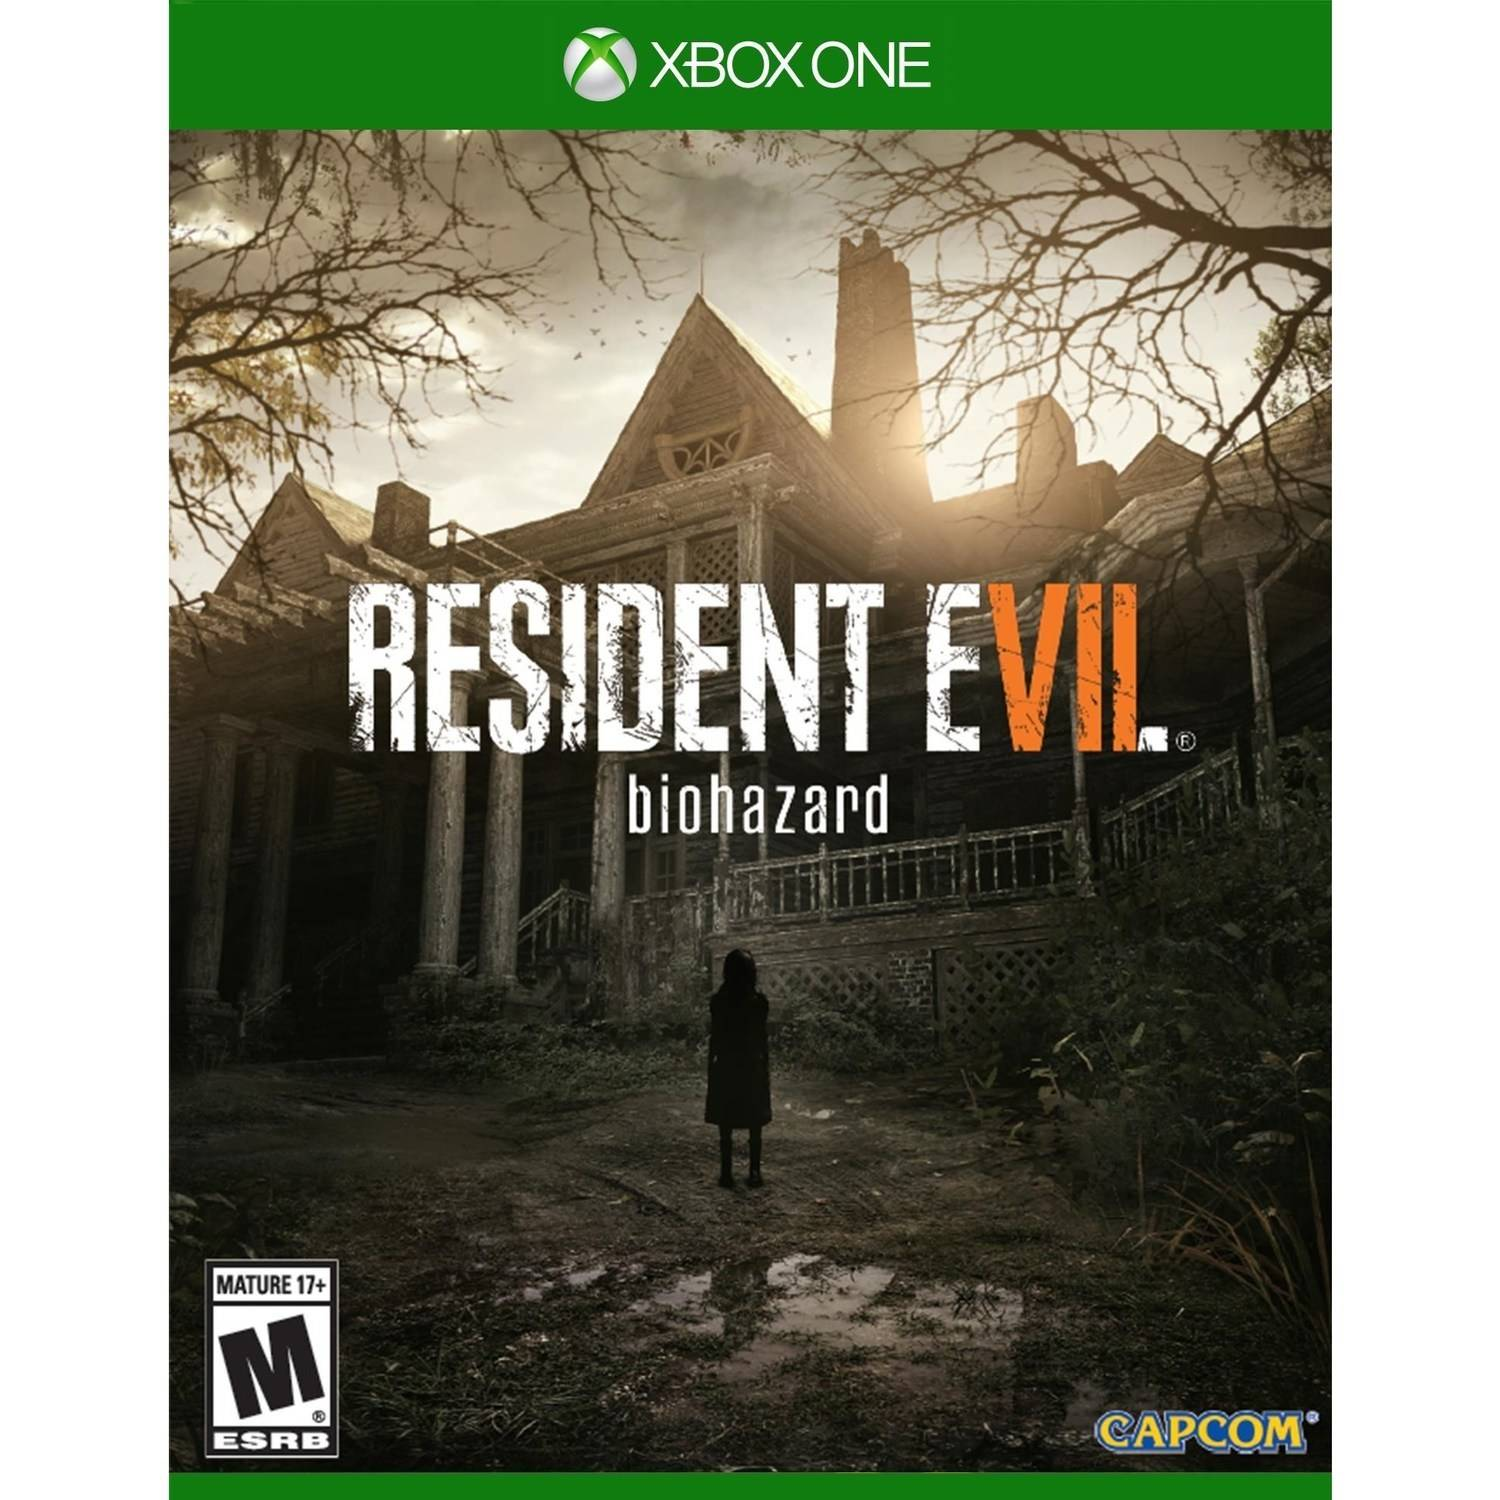 Resident Evil 7 (Xbox One) Capcom, 13388550173 by Capcom CO., LTD